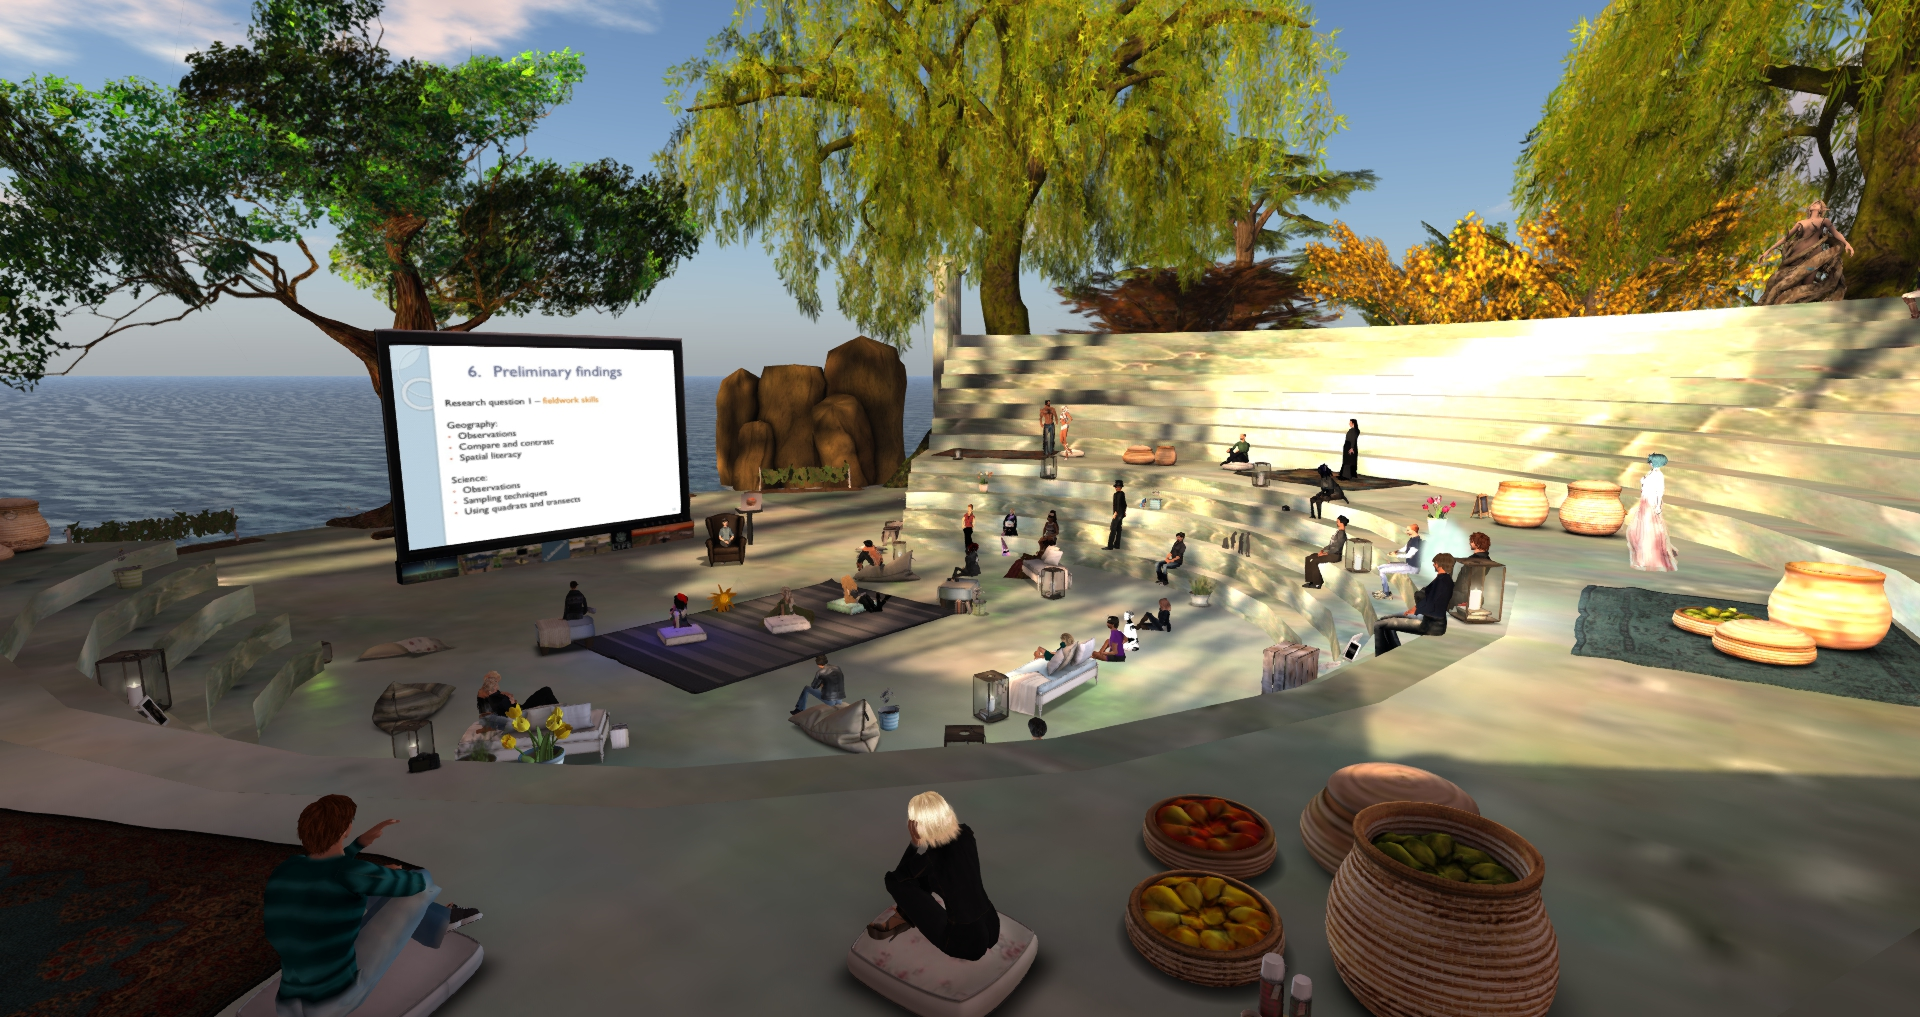 Audience in the Science Circle island of Second Life (picture courtesy: Chantal Snoek, Founder, Science Circle)